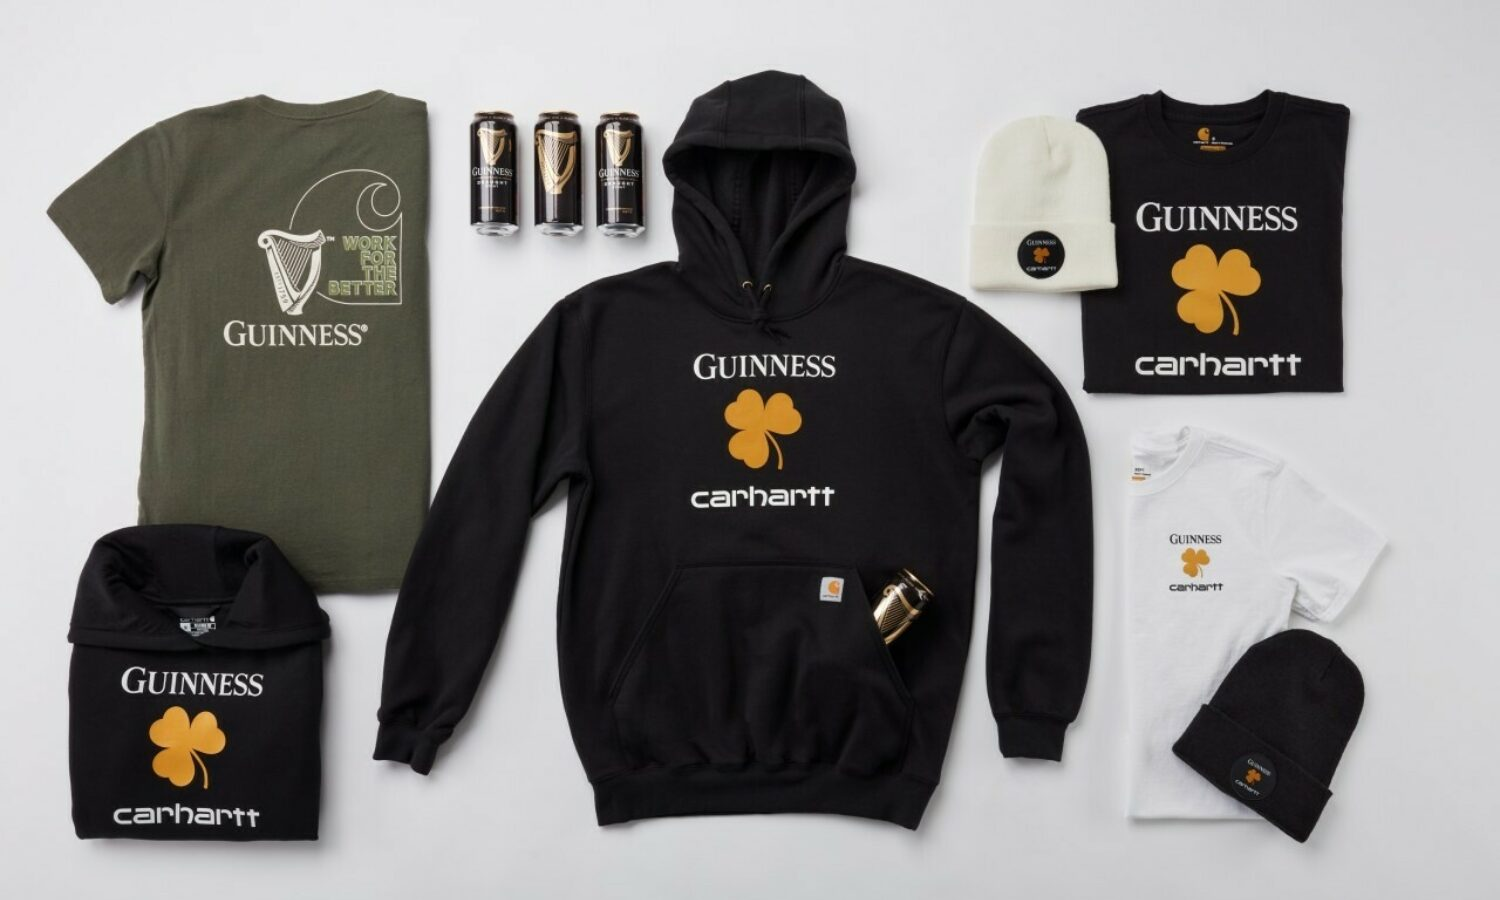 S3 carhartt x guinness product collection shot default 1280